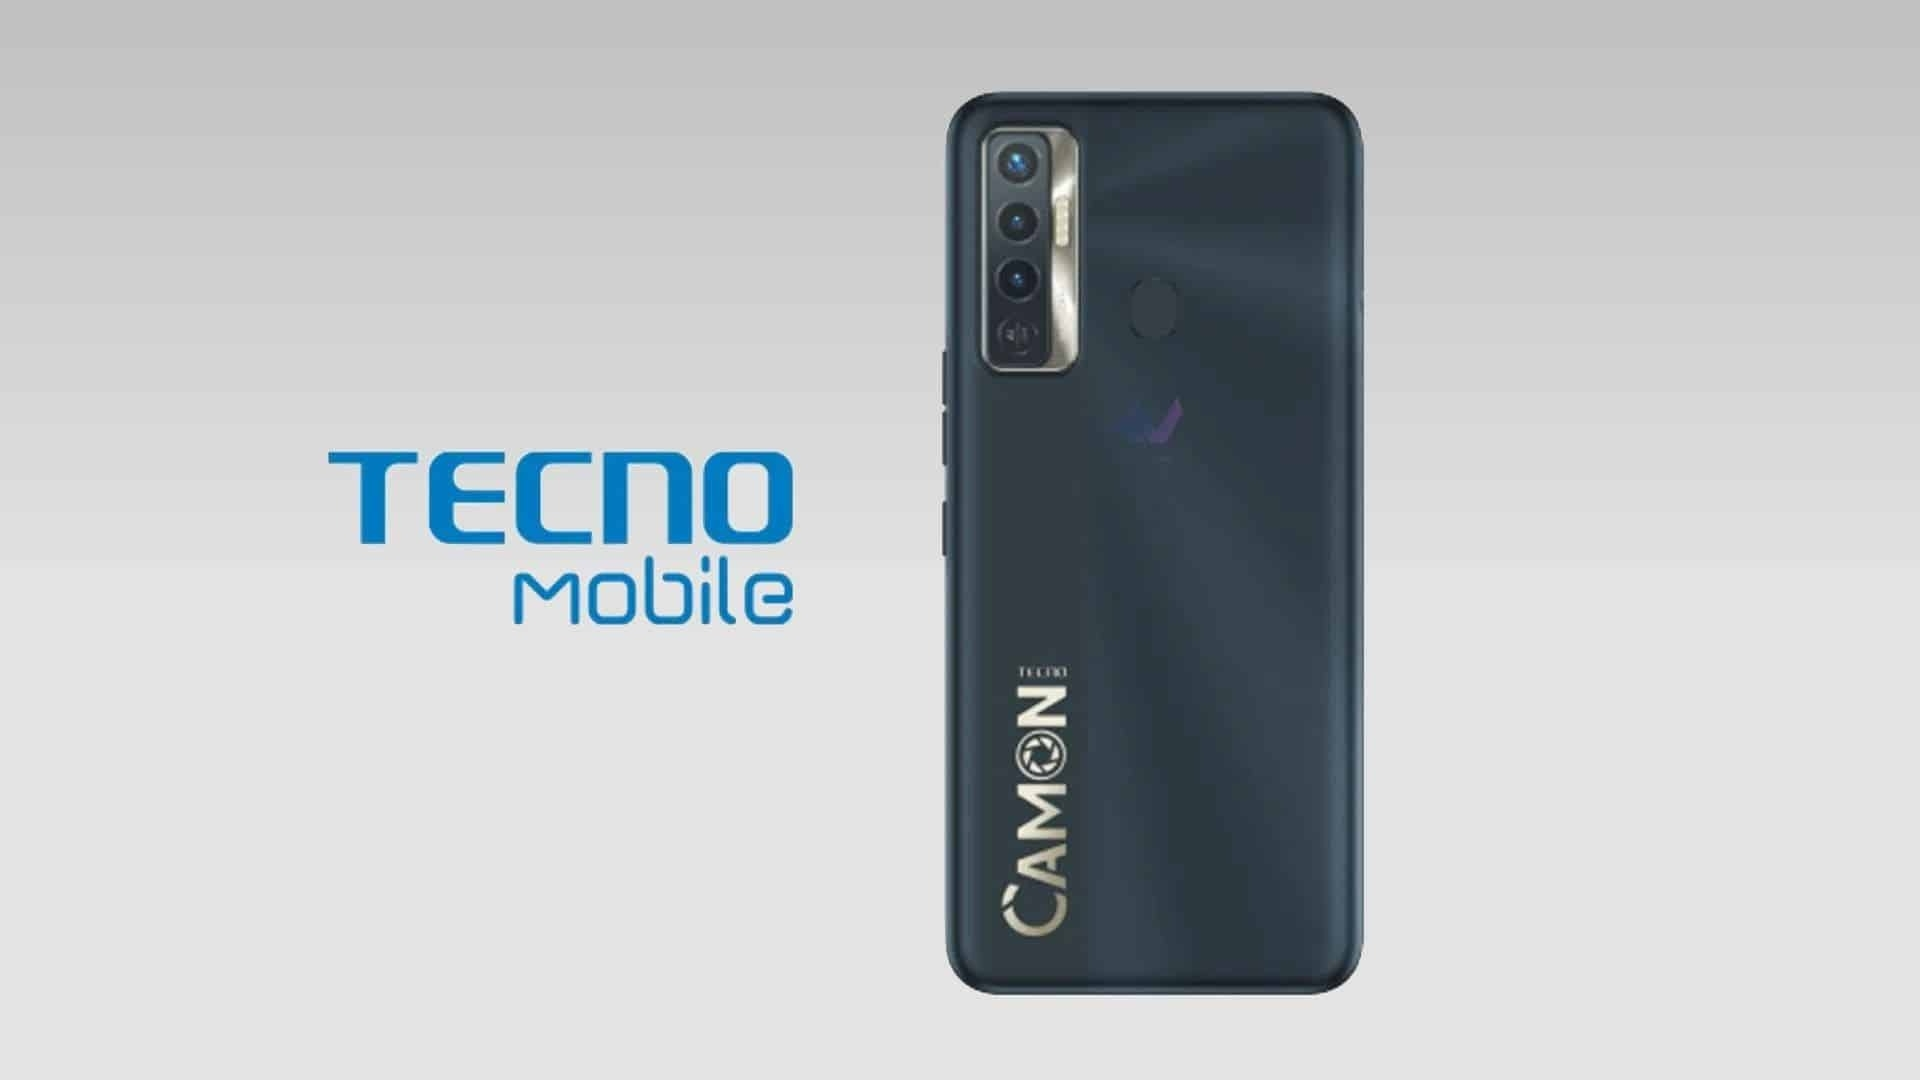 Tecno Camon 17 announced with Helio G85 and 90Hz display